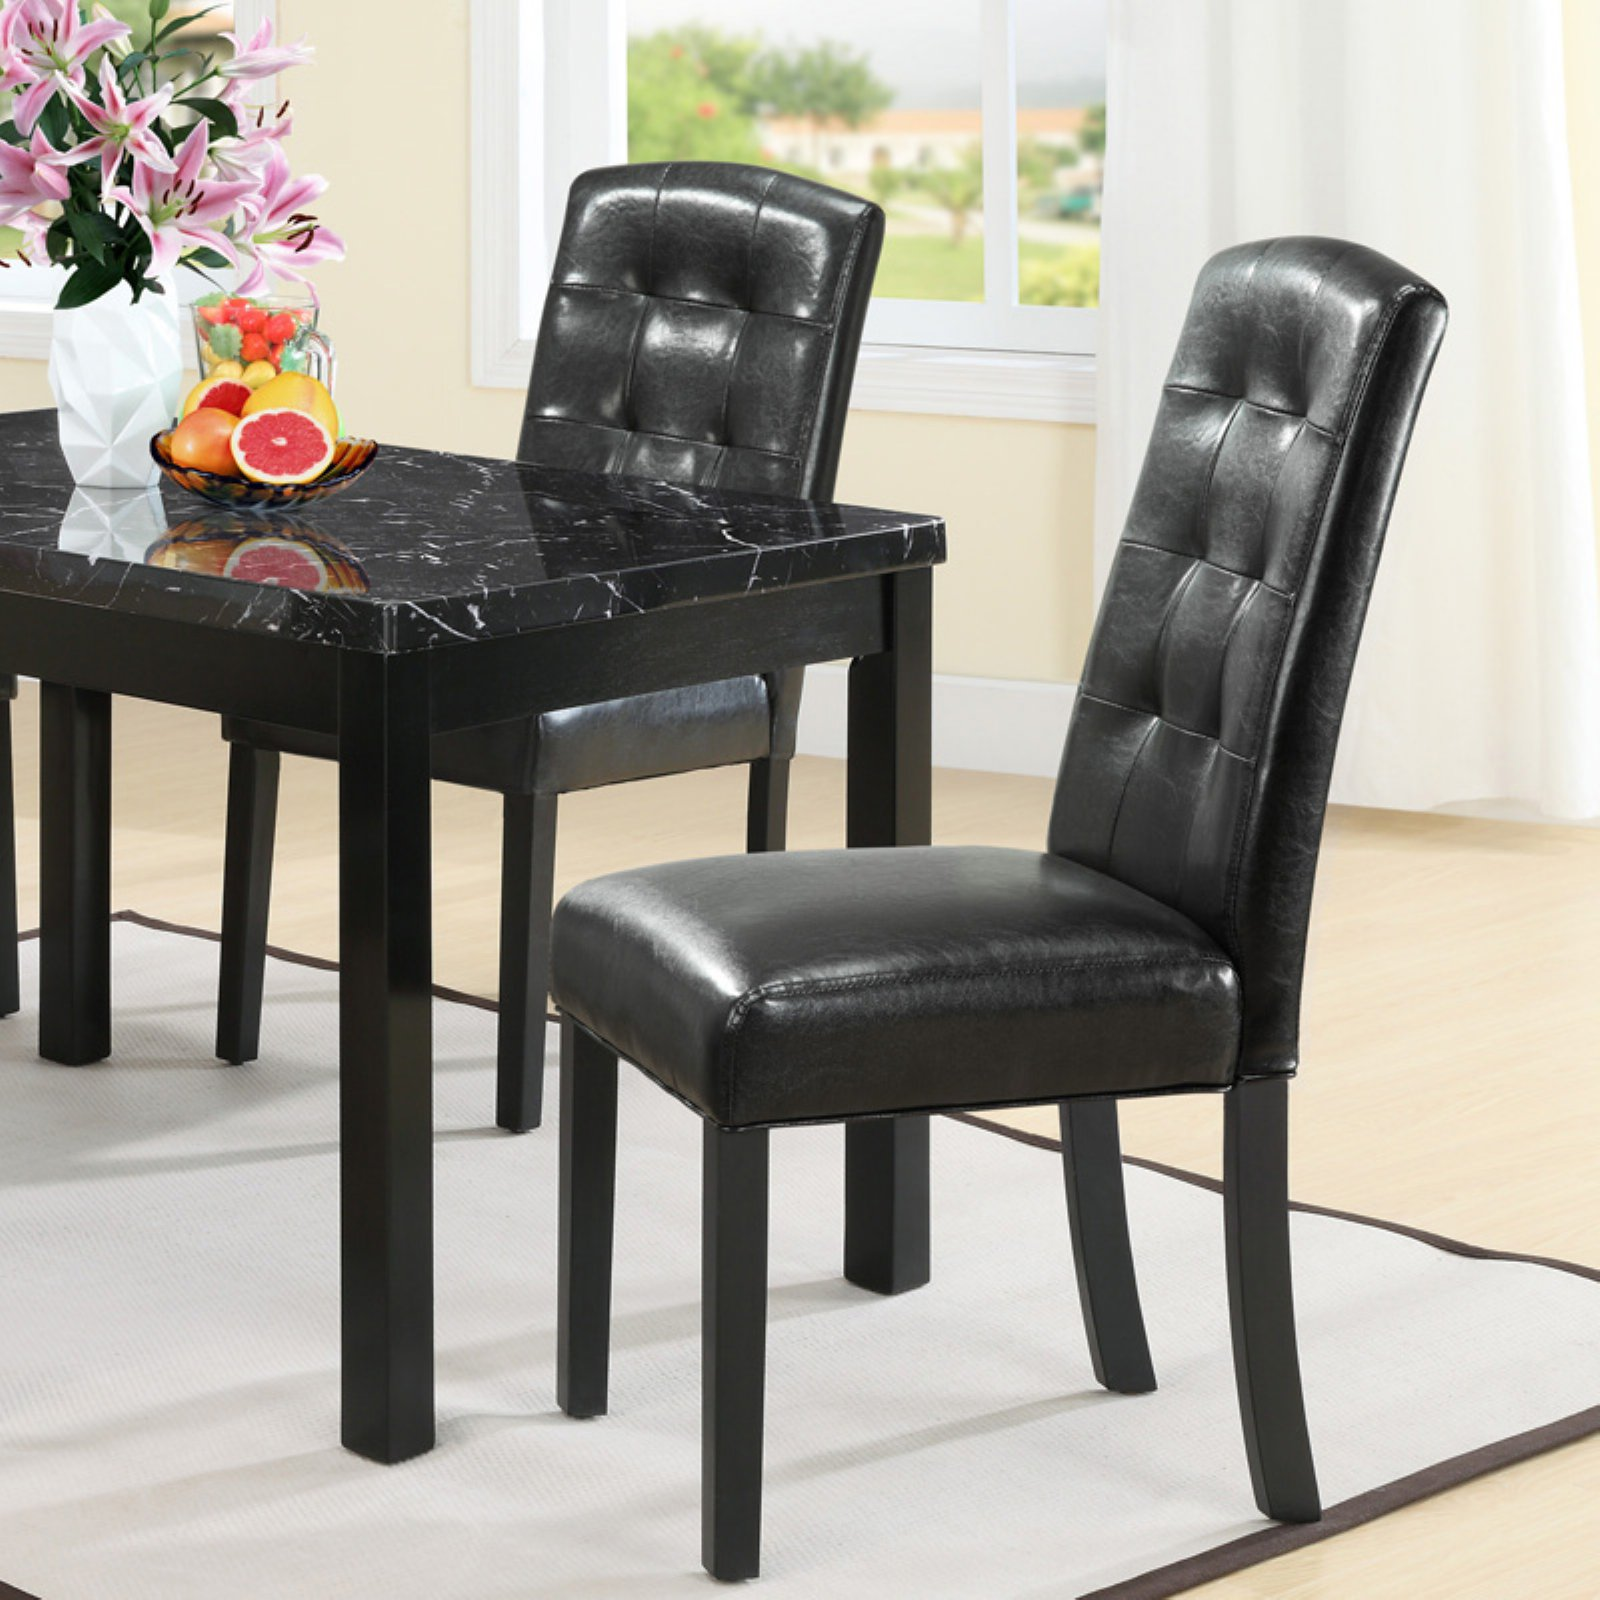 Modway Perdure Tufted Leatherette Dining Side Chair in Black